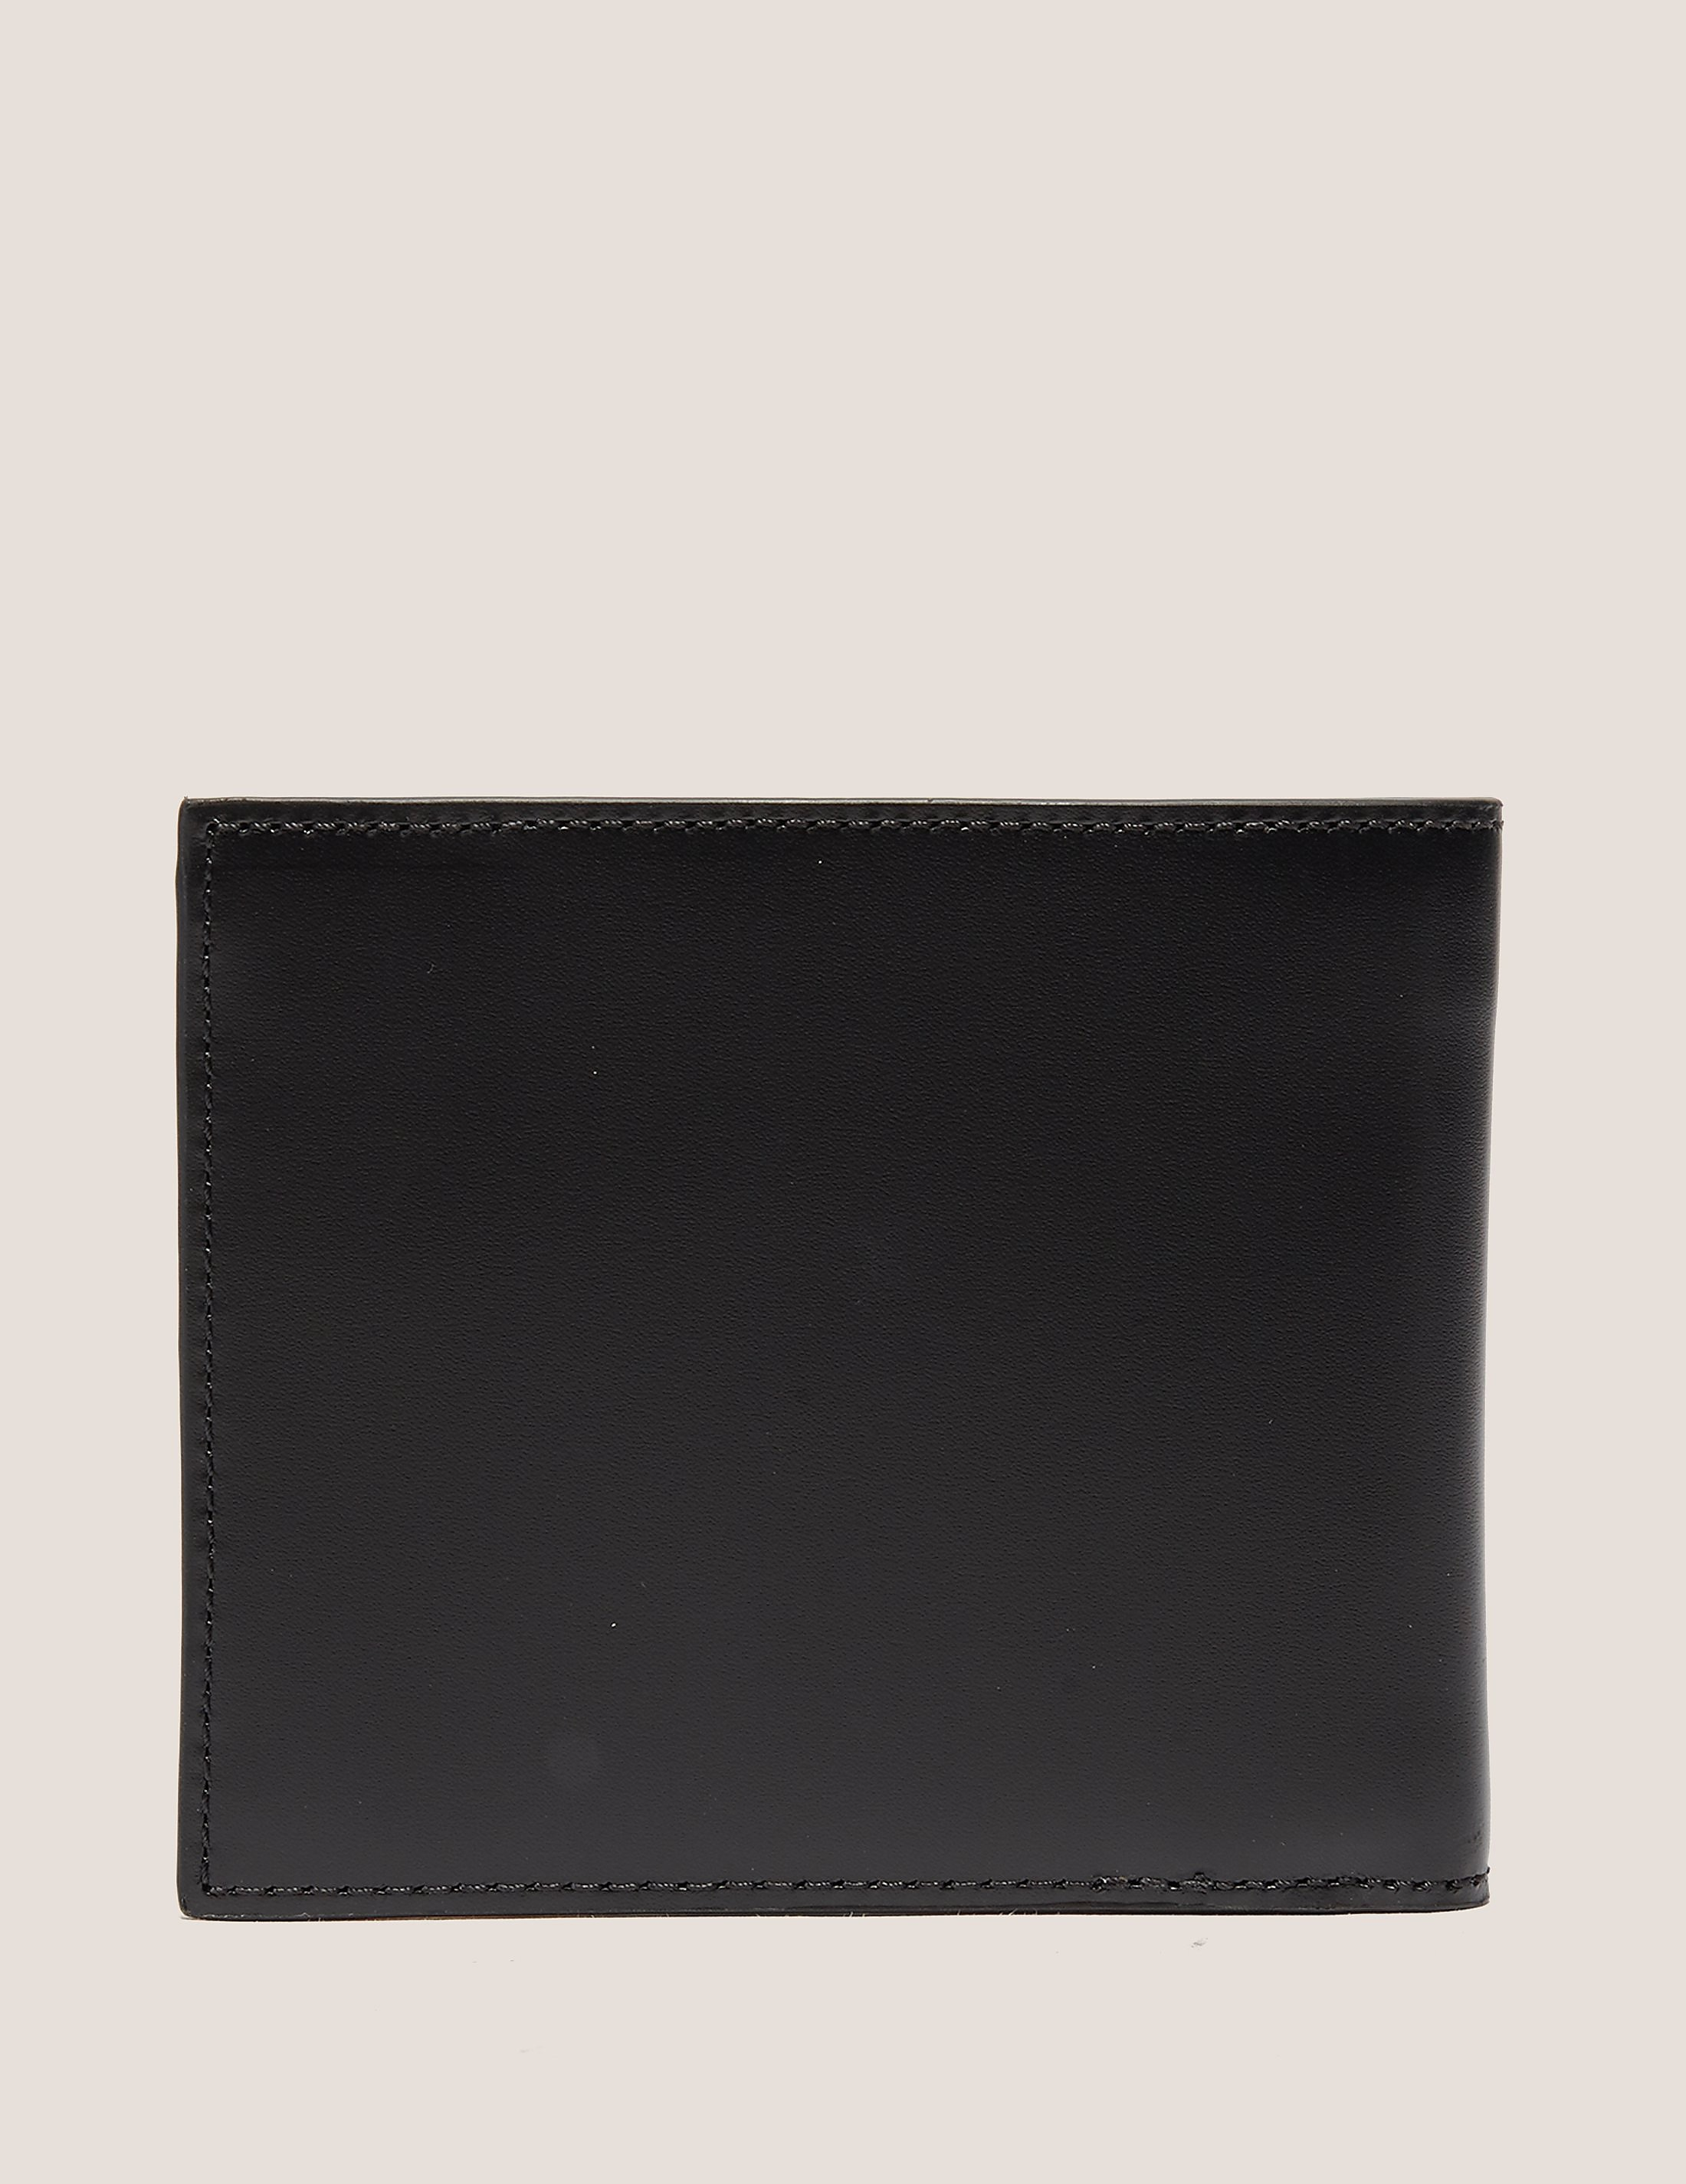 Paul Smith Vintage Cartoon Billfold Wallet